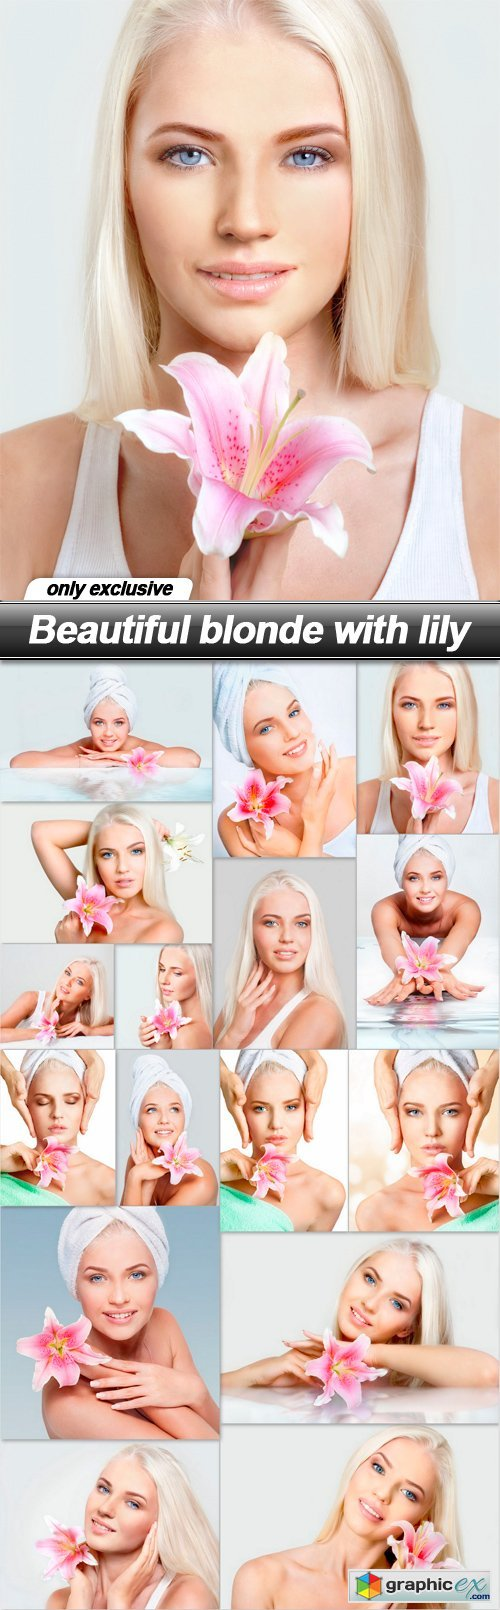 Beautiful blonde with lily - 16 UHQ JPEG